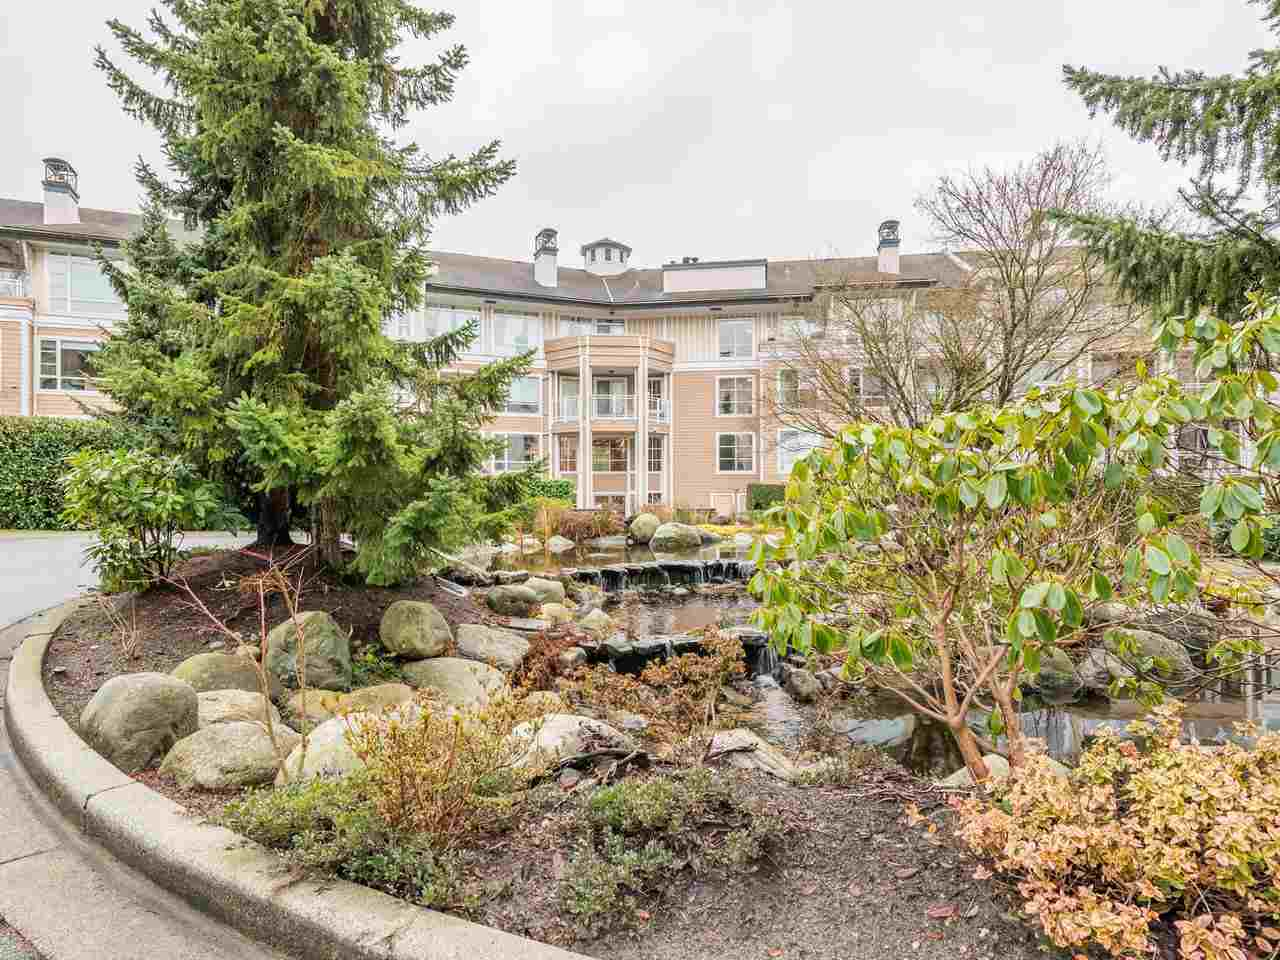 412 3629 DEERCREST DRIVE - Roche Point Apartment/Condo for sale, 1 Bedroom (R2525424) - #1